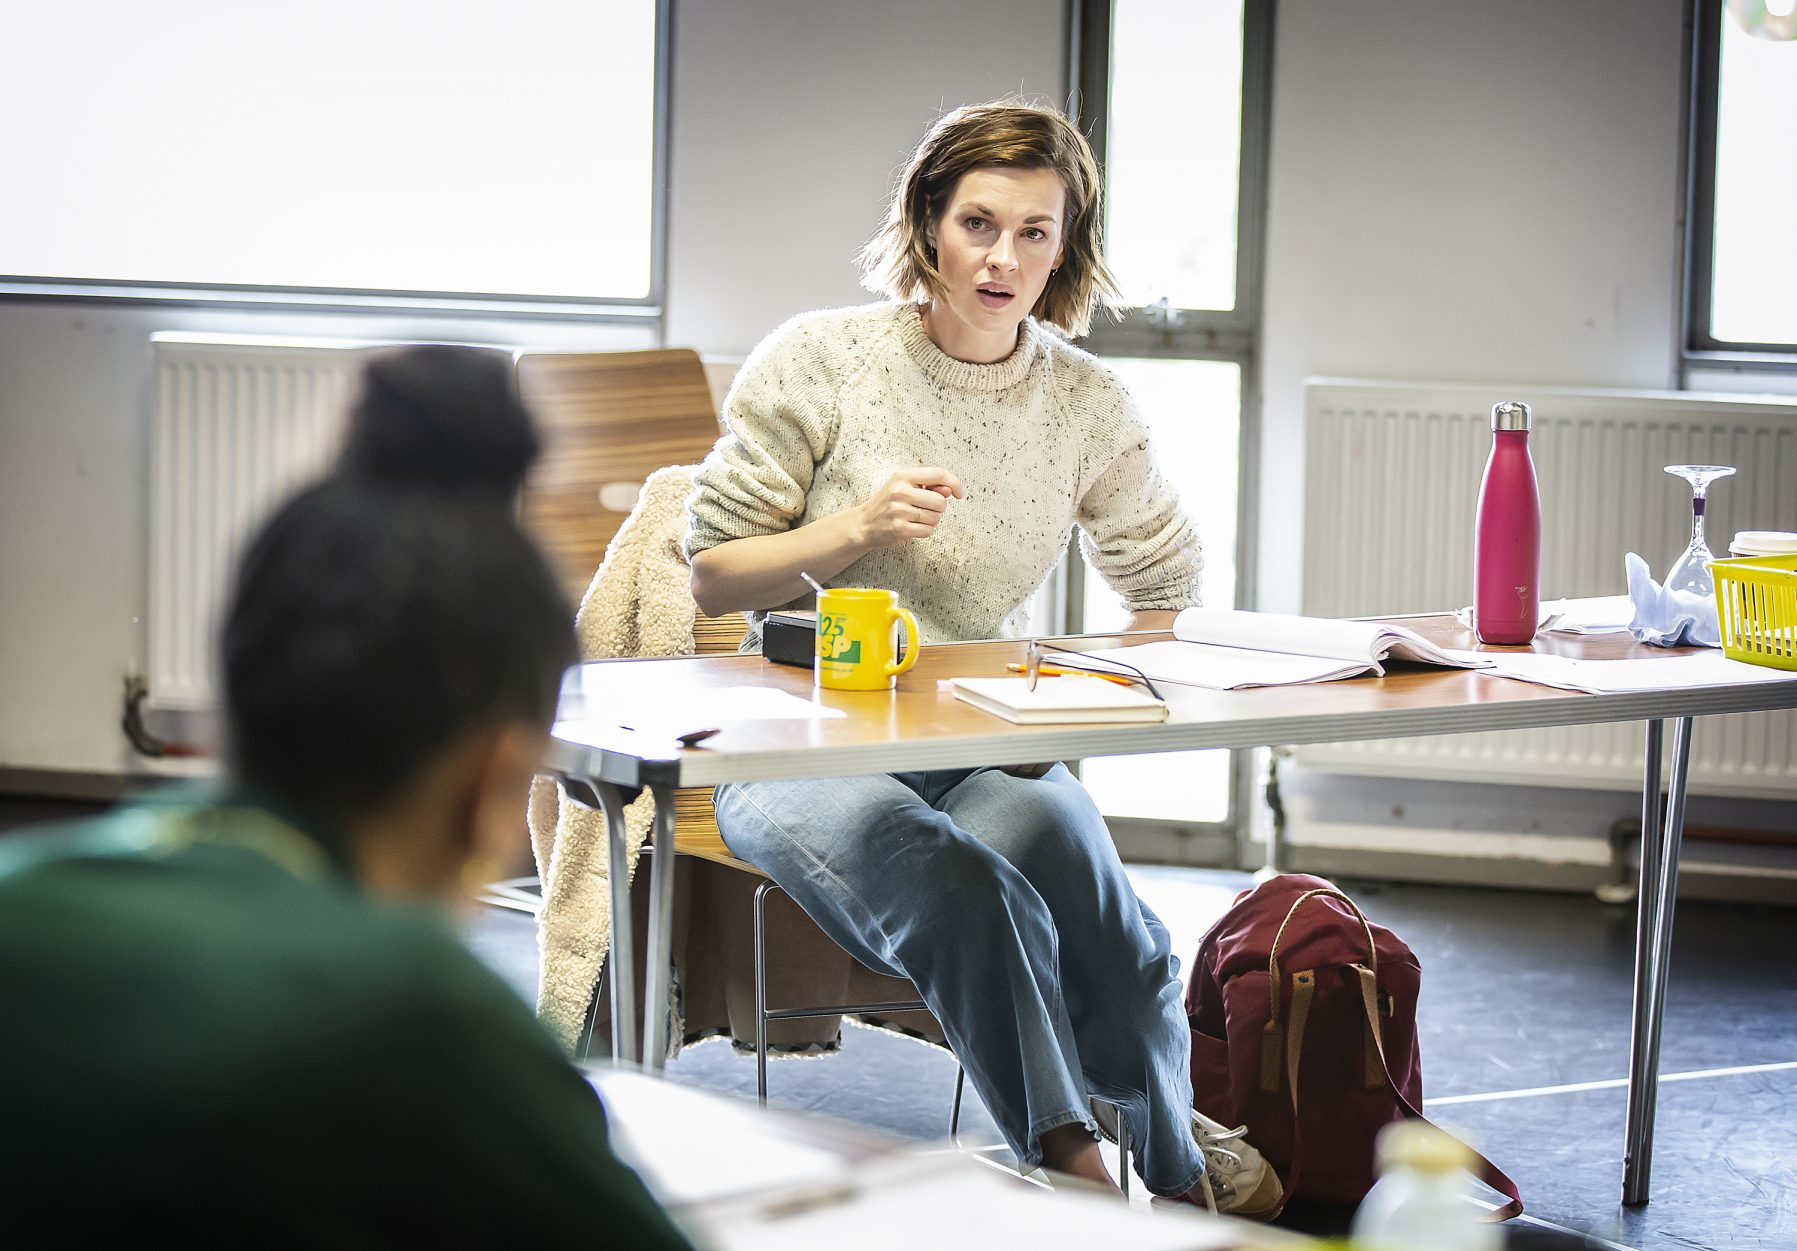 Photography by Pamela Raith